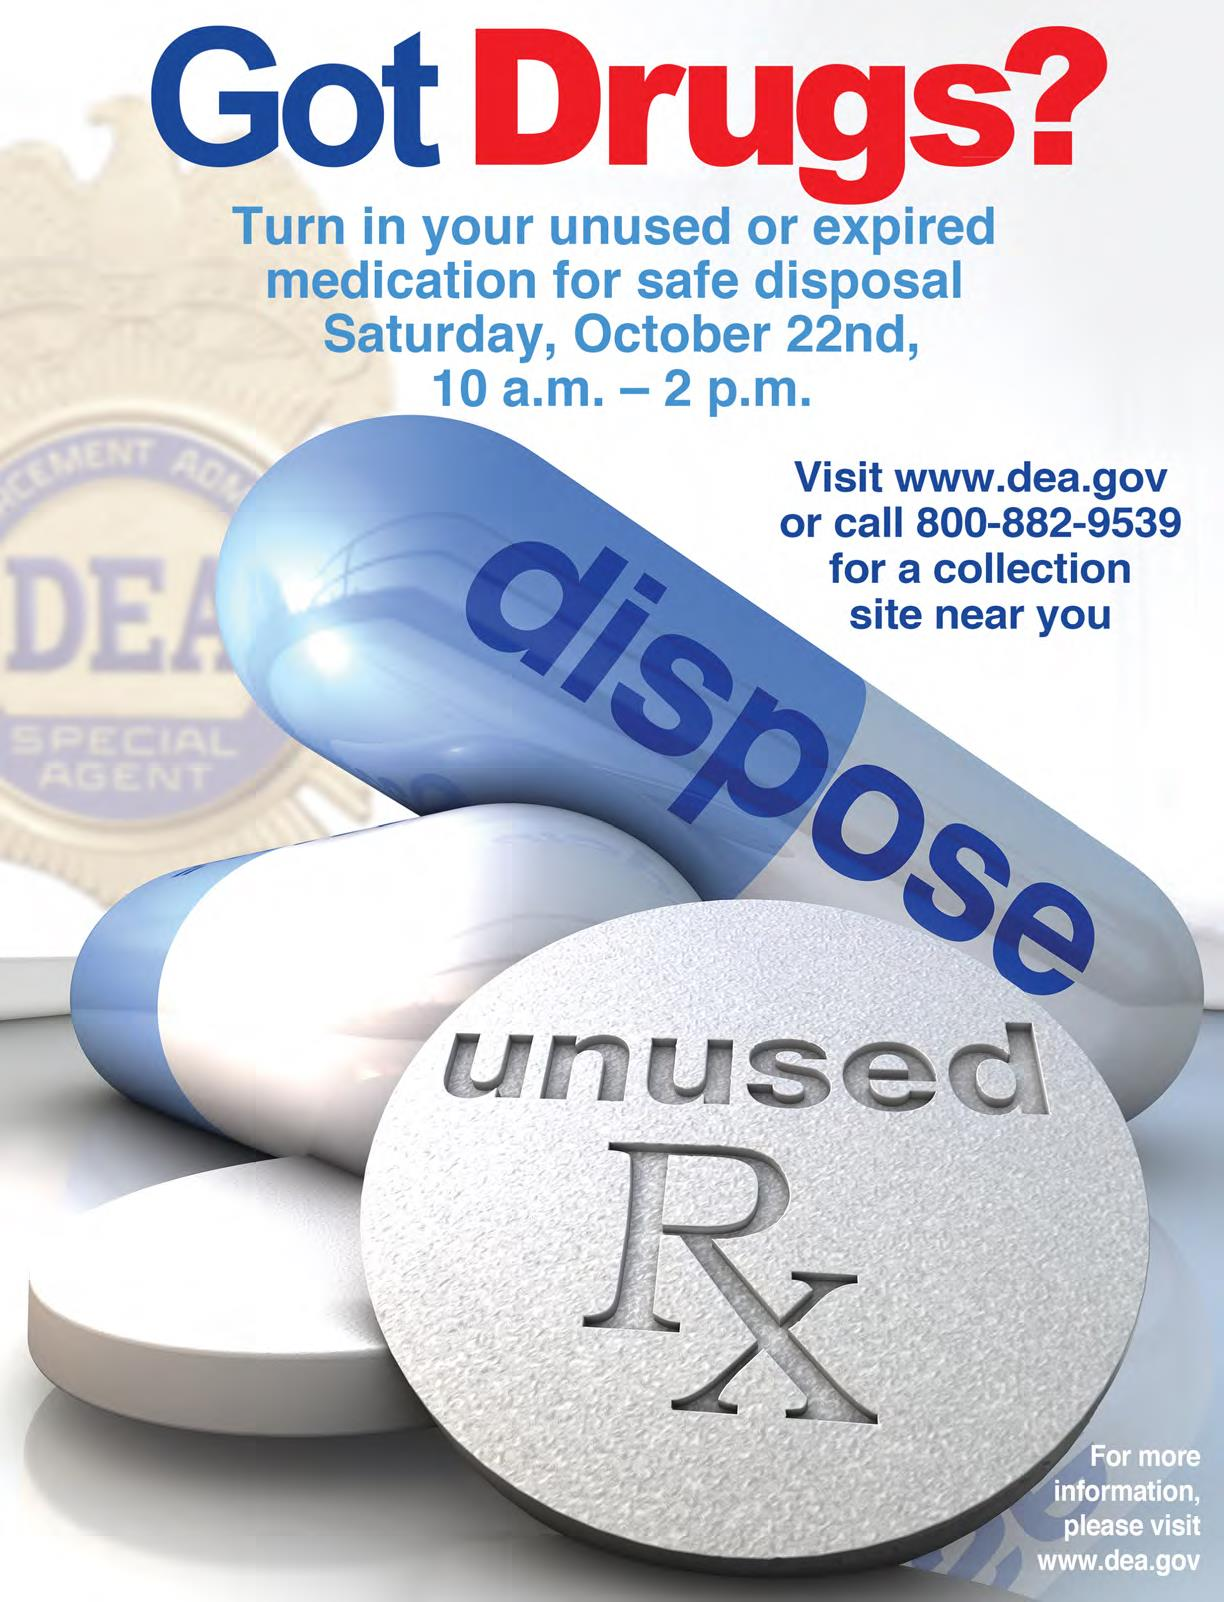 Turn That Unused Room Of The House Into This: Prevent Opioid Abuse: Turn In Unused Medications